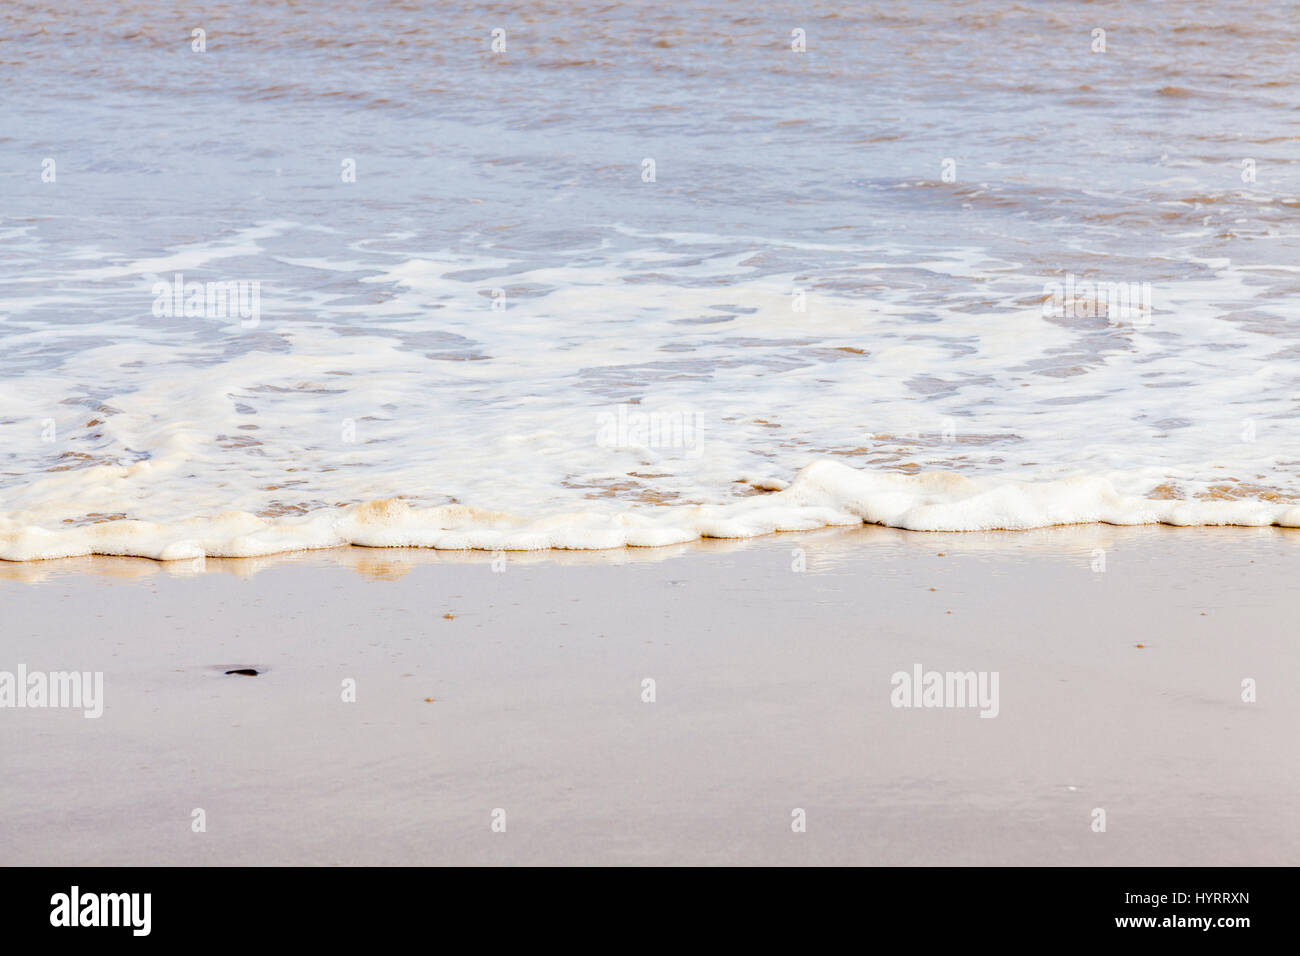 Sea foam or spume on the tide flowing across the sand on a beach - Stock Image